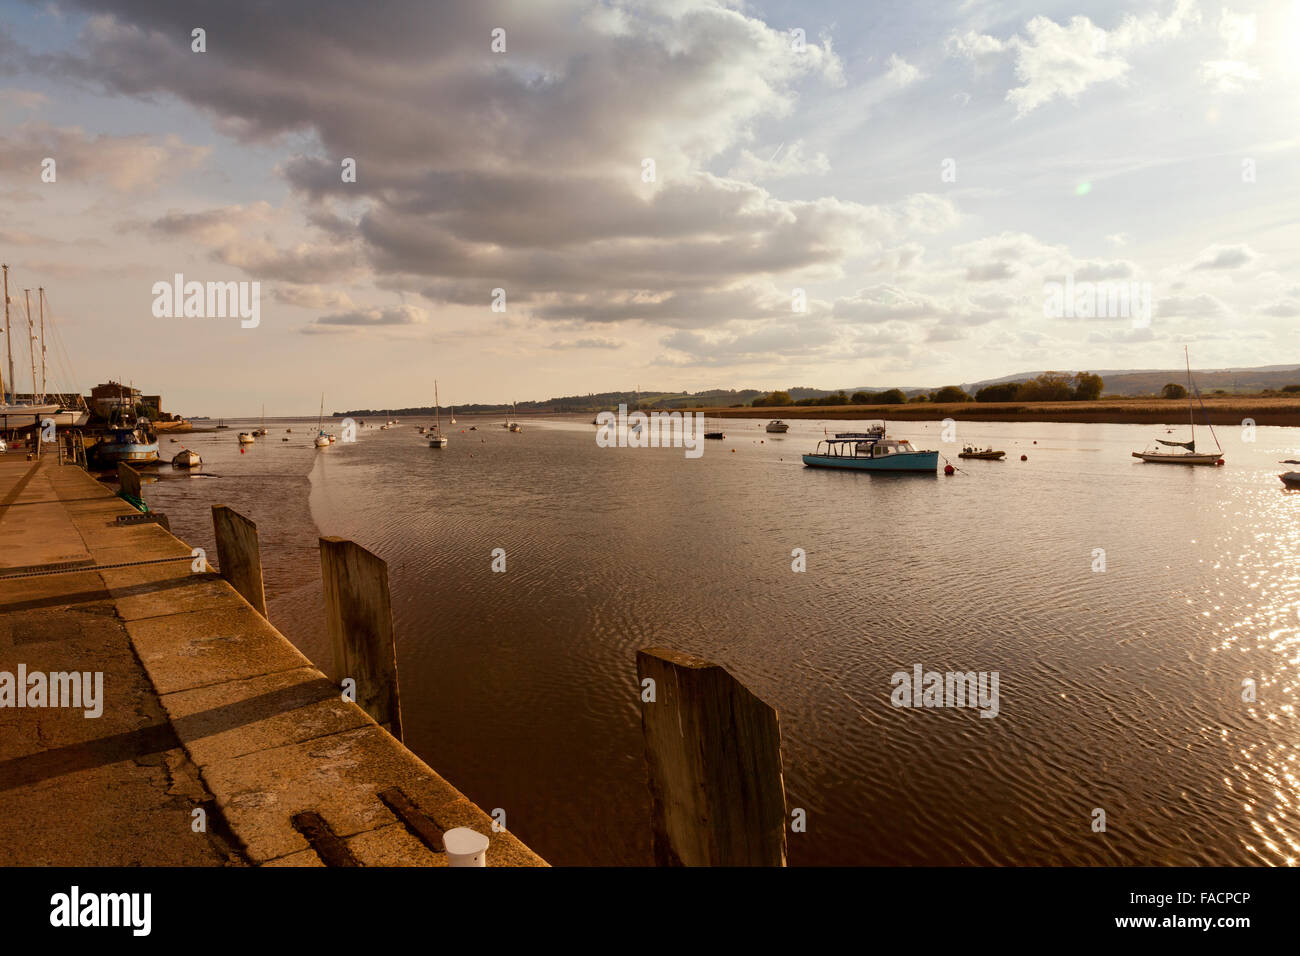 A collection of yachts and motor boats moored in the River Exe at Topsham, Devon, England, UK - Stock Image